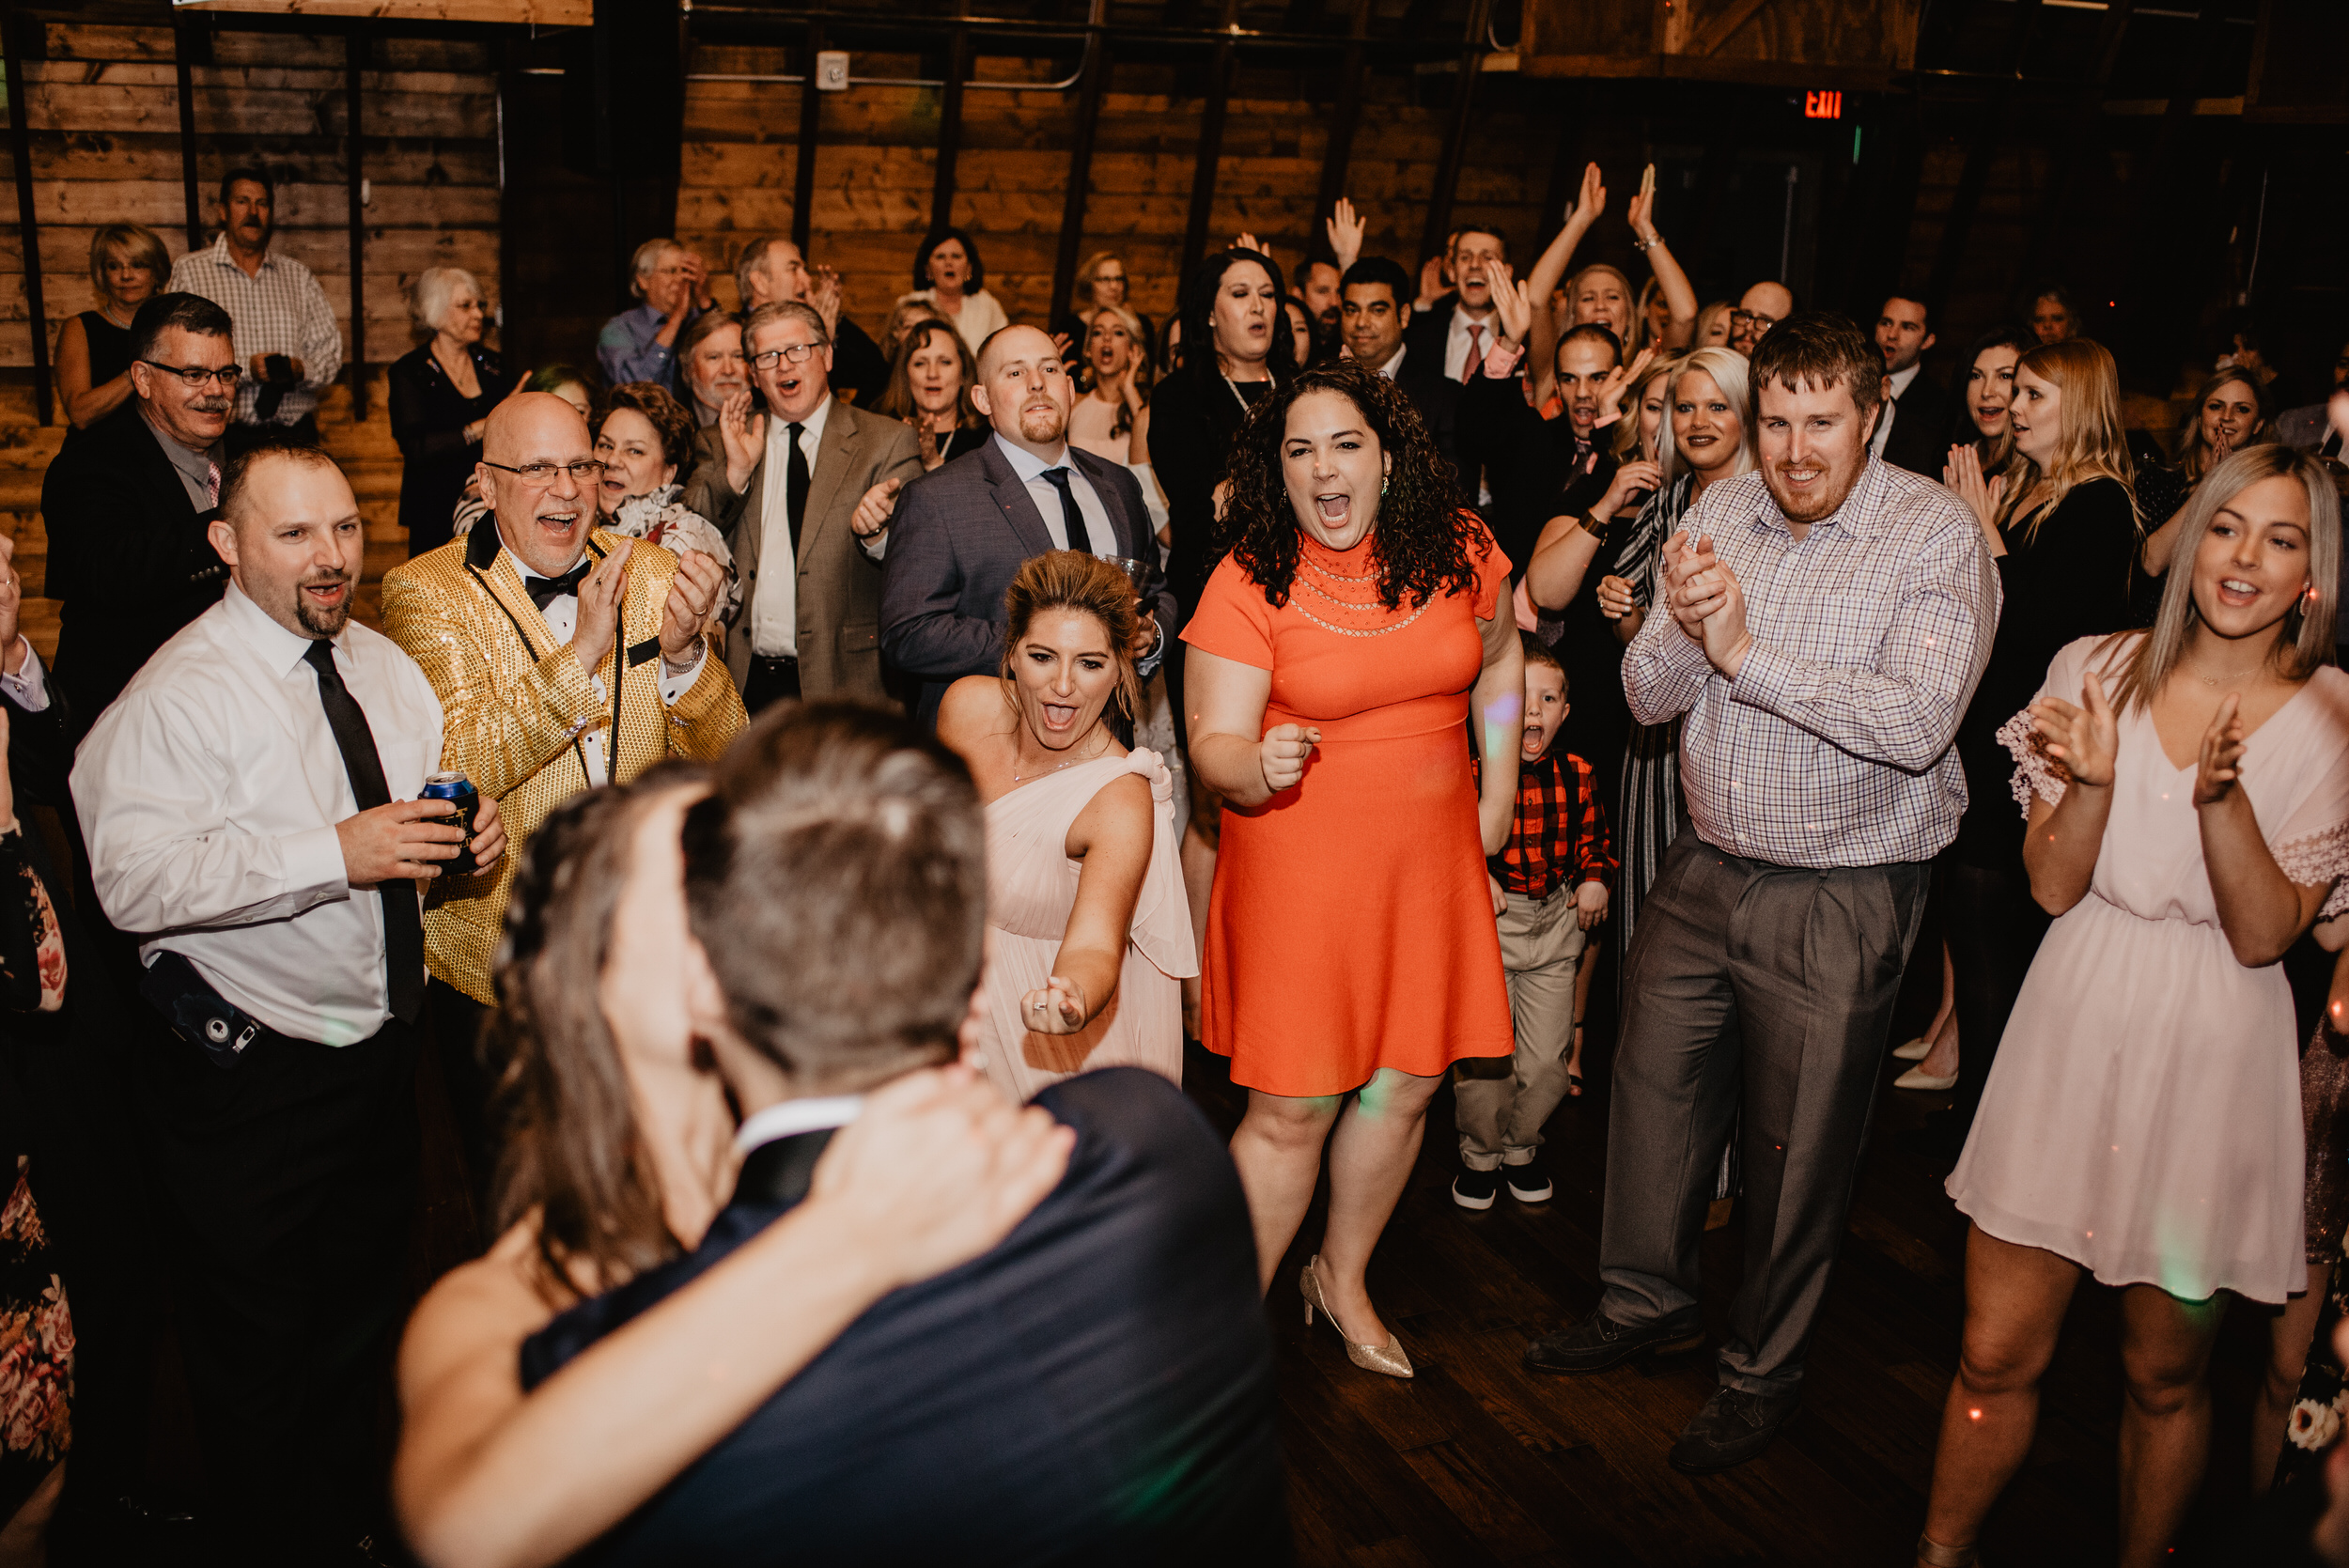 The Barn at the Ackerhurst Dairy Farm Omaha Nebraska Wedding Kaylie Sirek Photography132.jpg